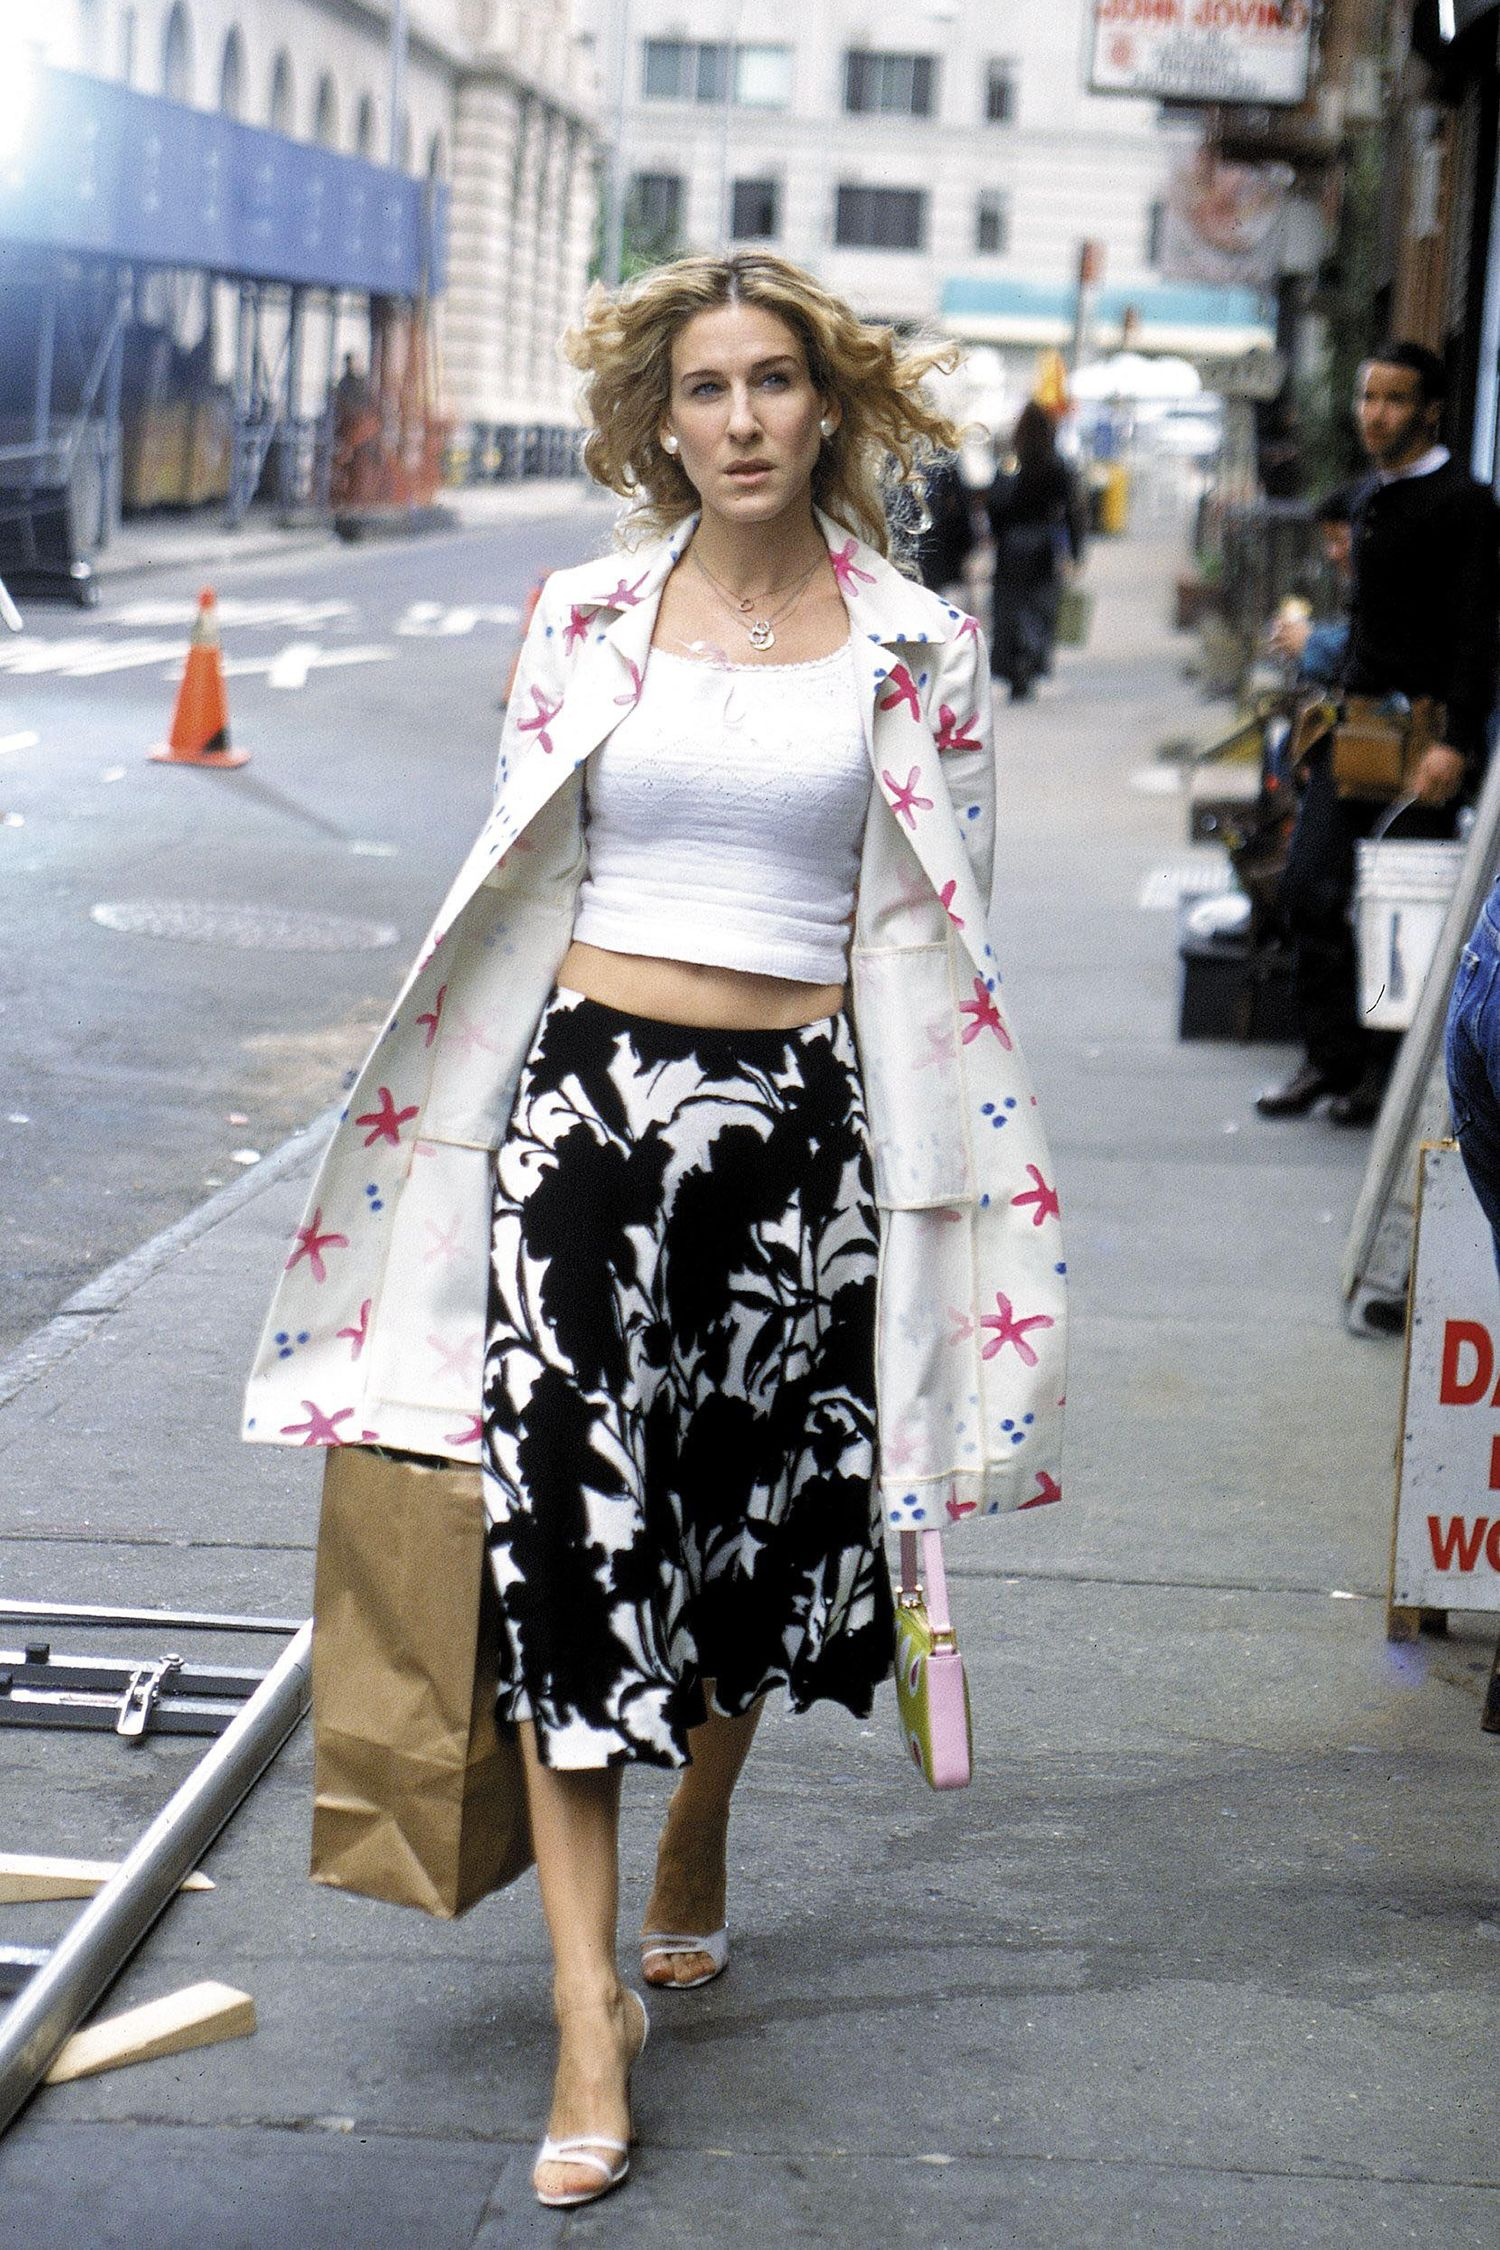 Carrie sex and the city fashion